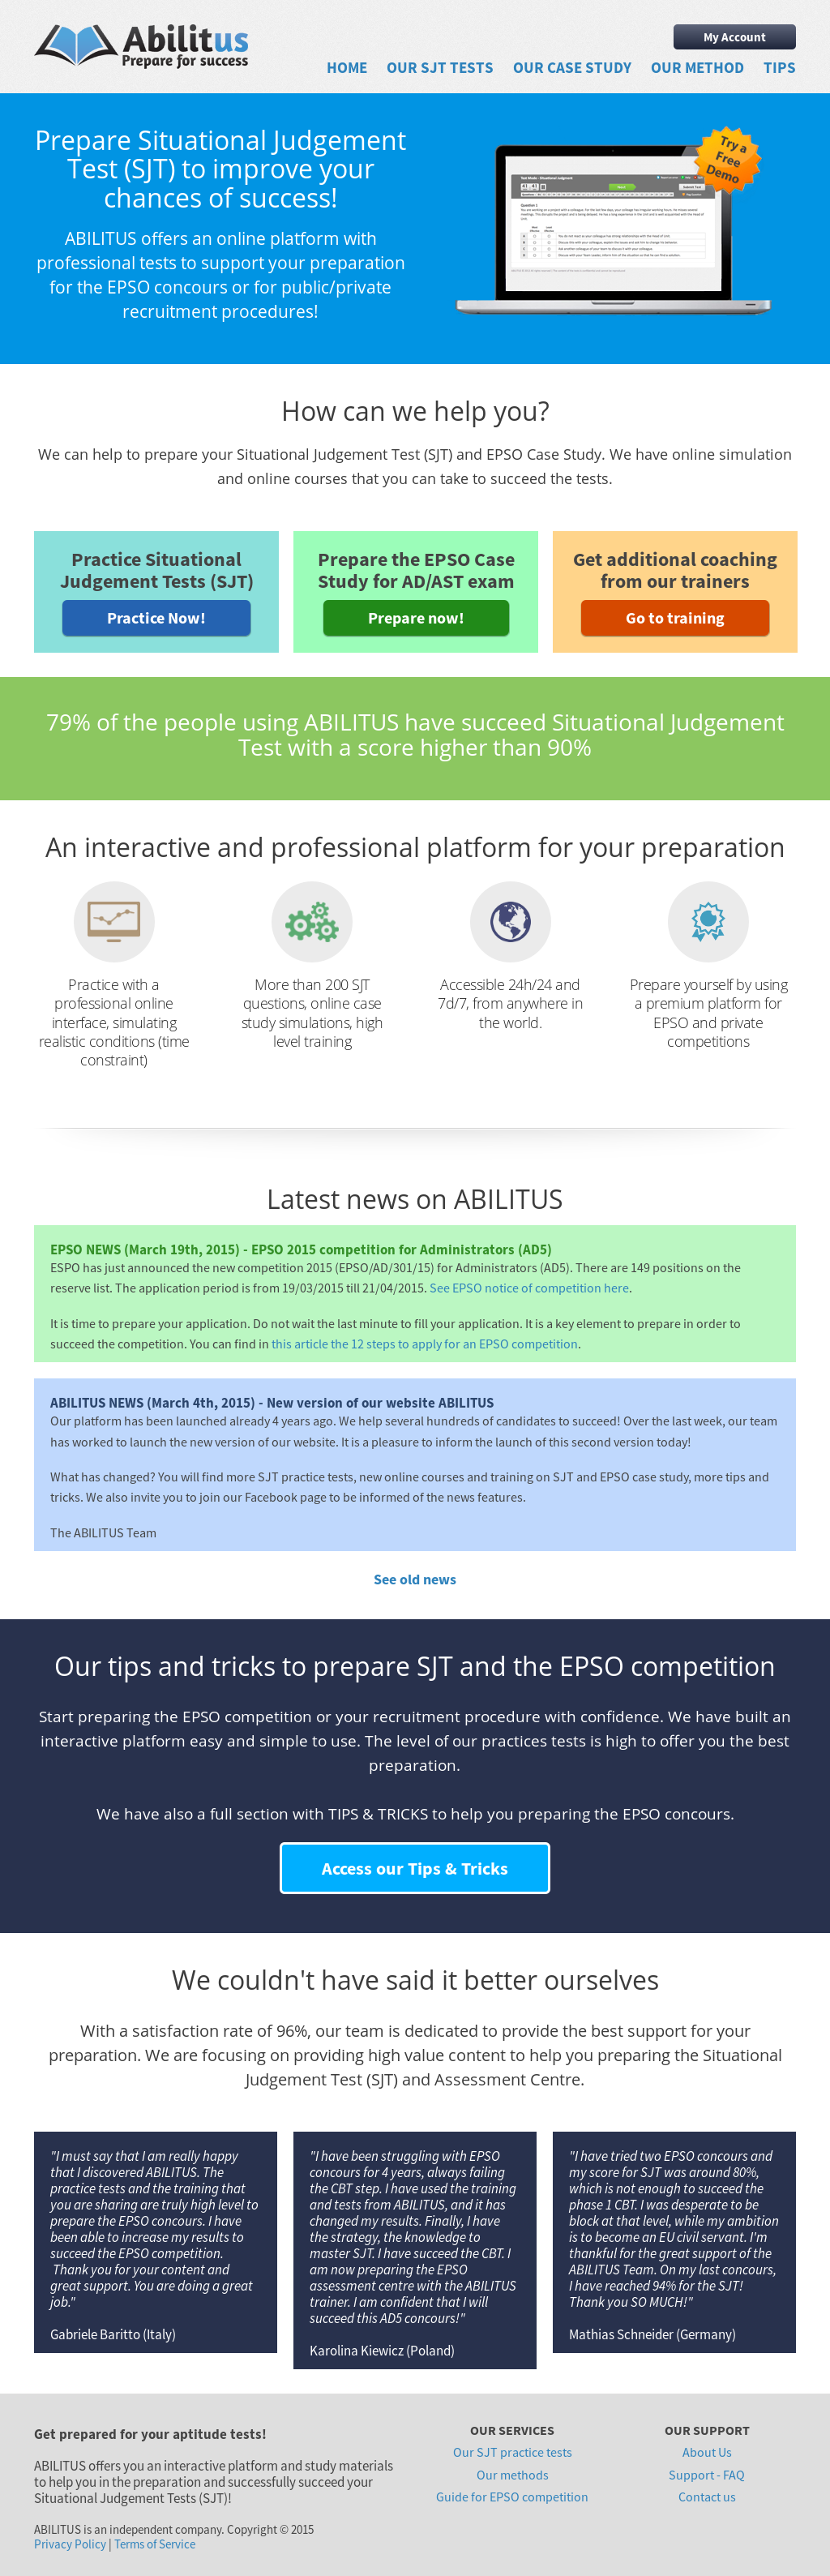 Abilitus Competitors, Revenue and Employees - Owler Company